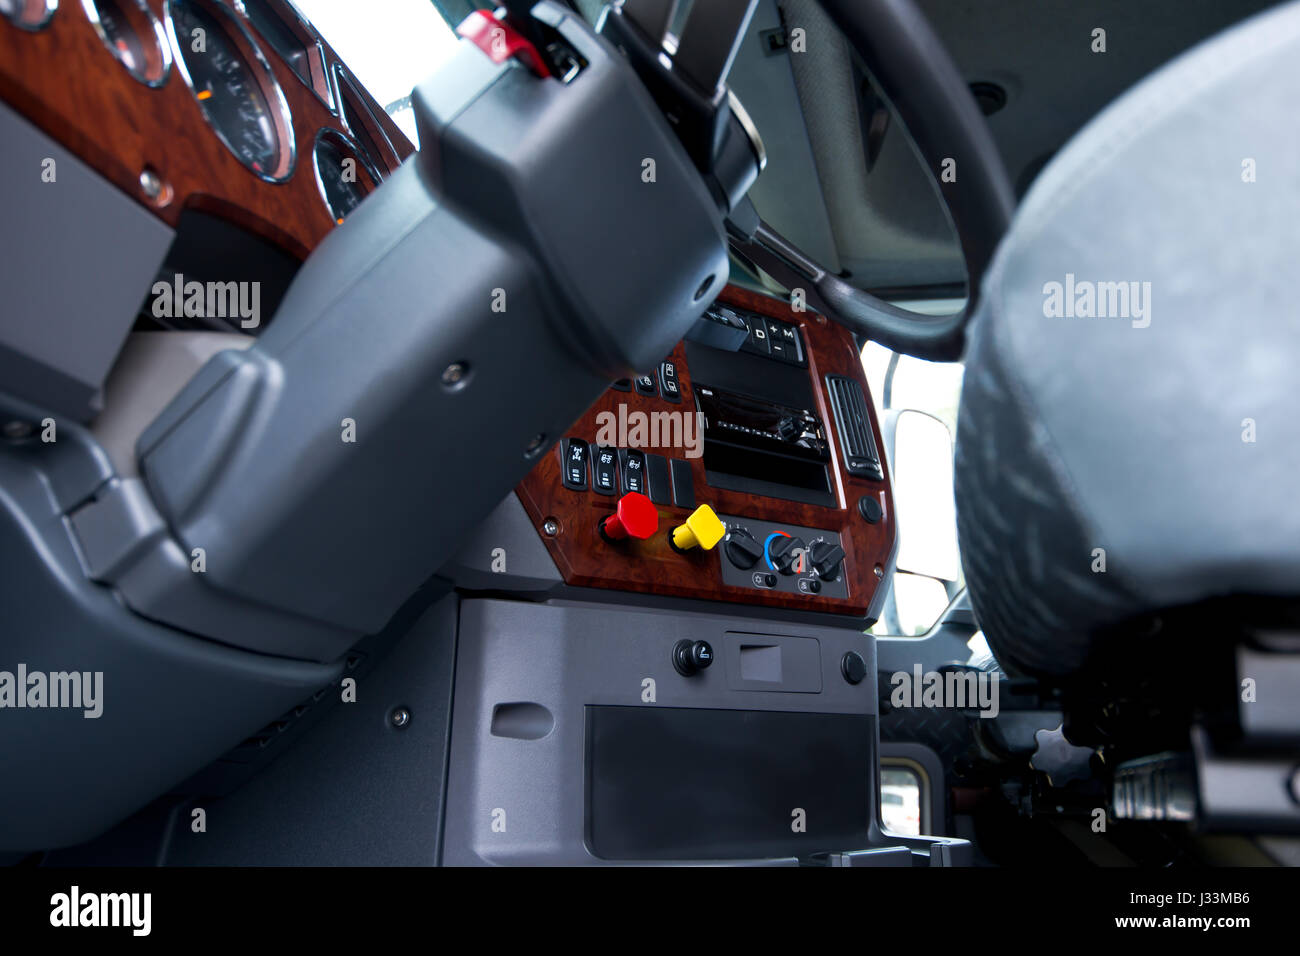 Modern ergonomic and stylish dashboard of heavy semi truck with lots of equipment, Steering column, indicators, - Stock Image